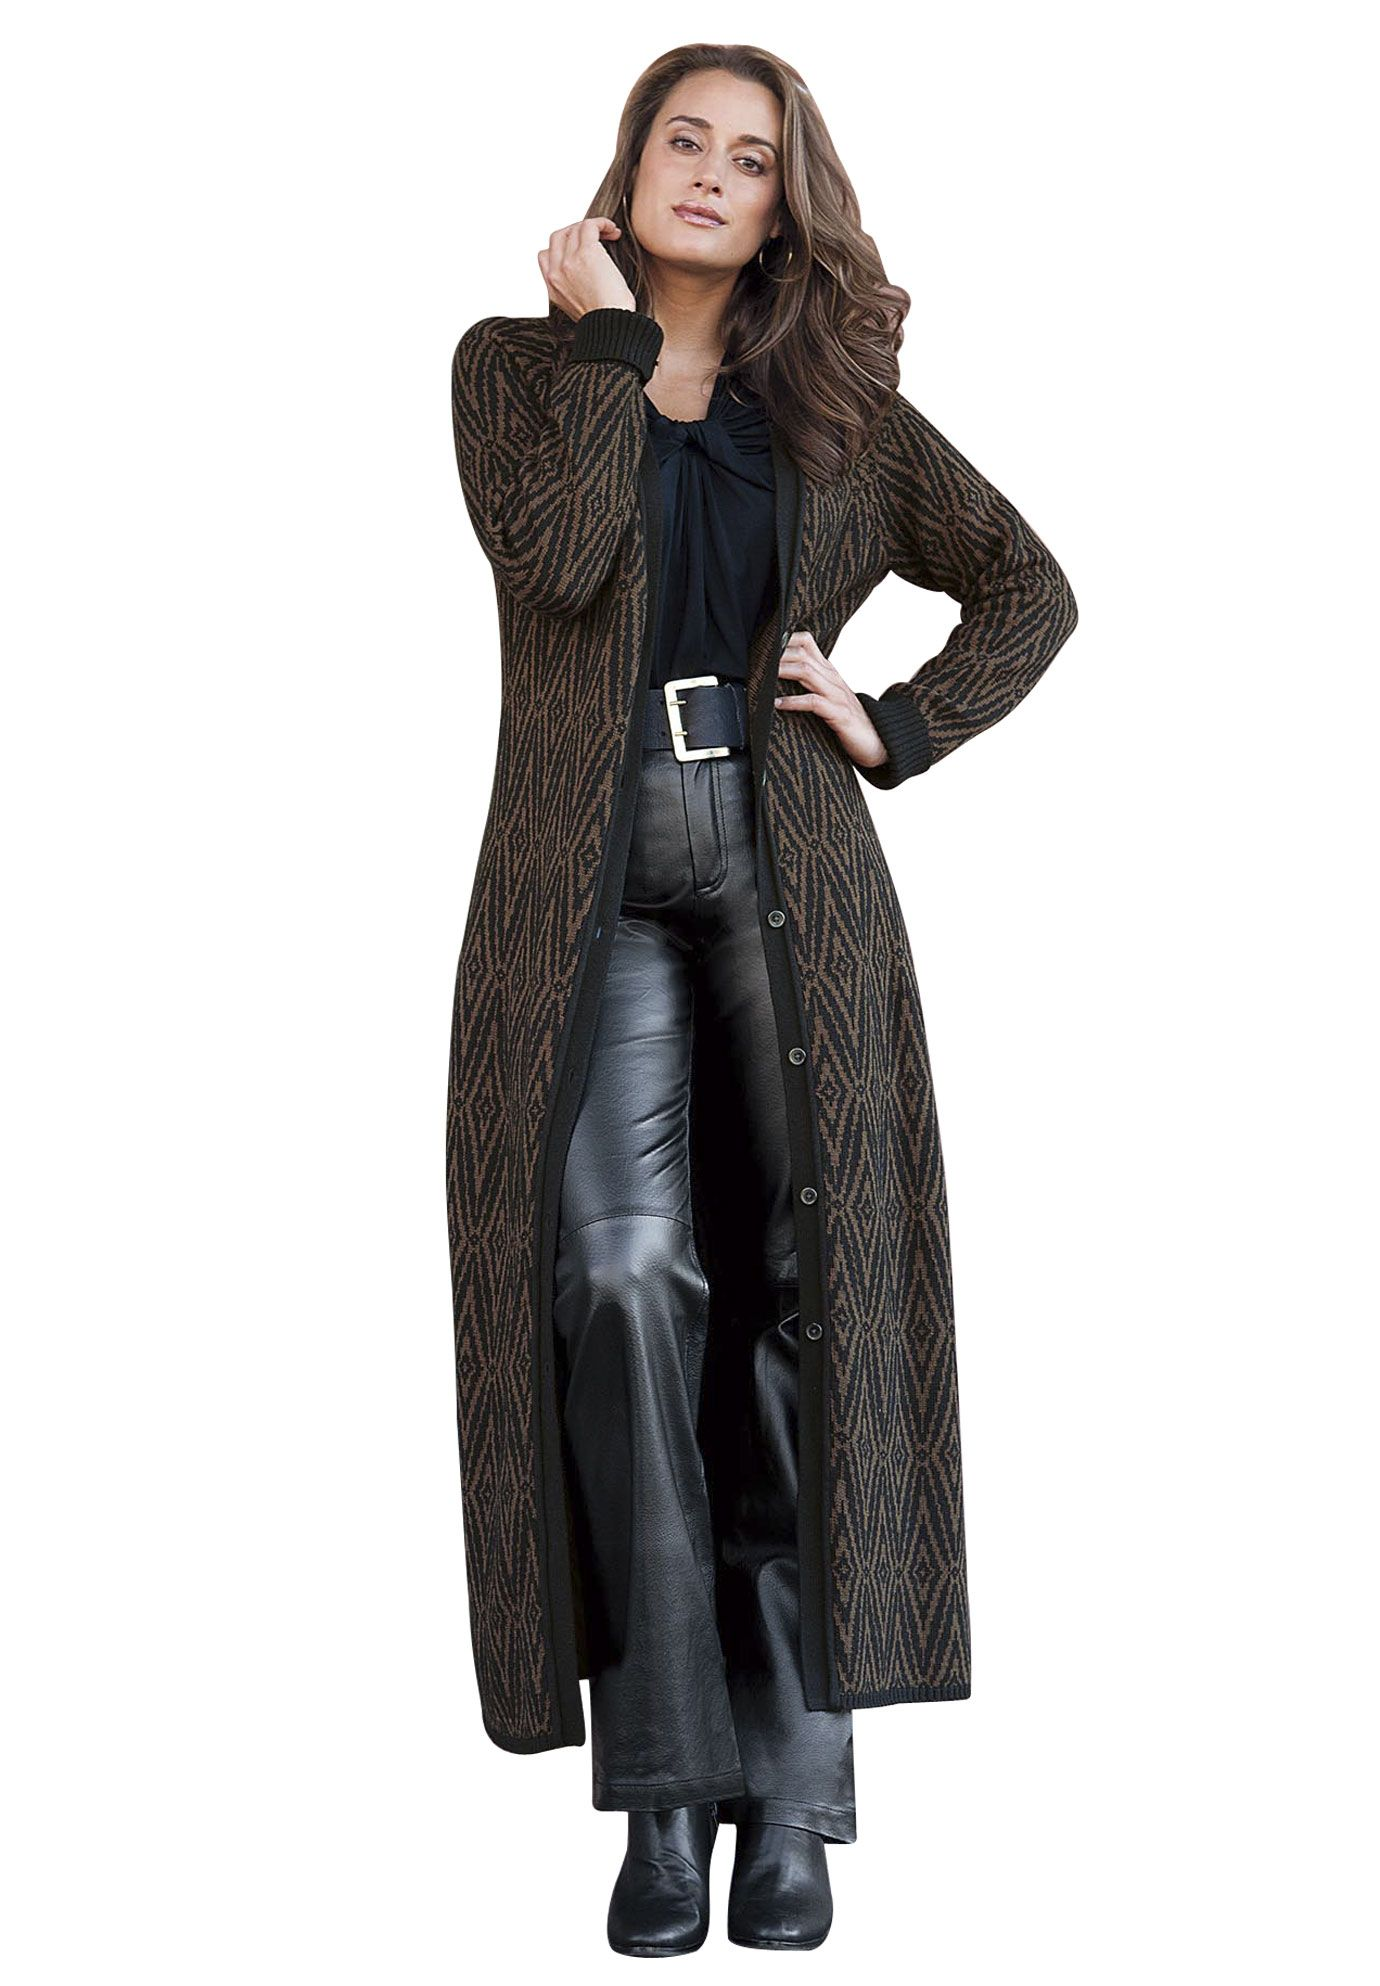 Jessica London Jacquard Duster | Long cardigan sweater, Dusters ...